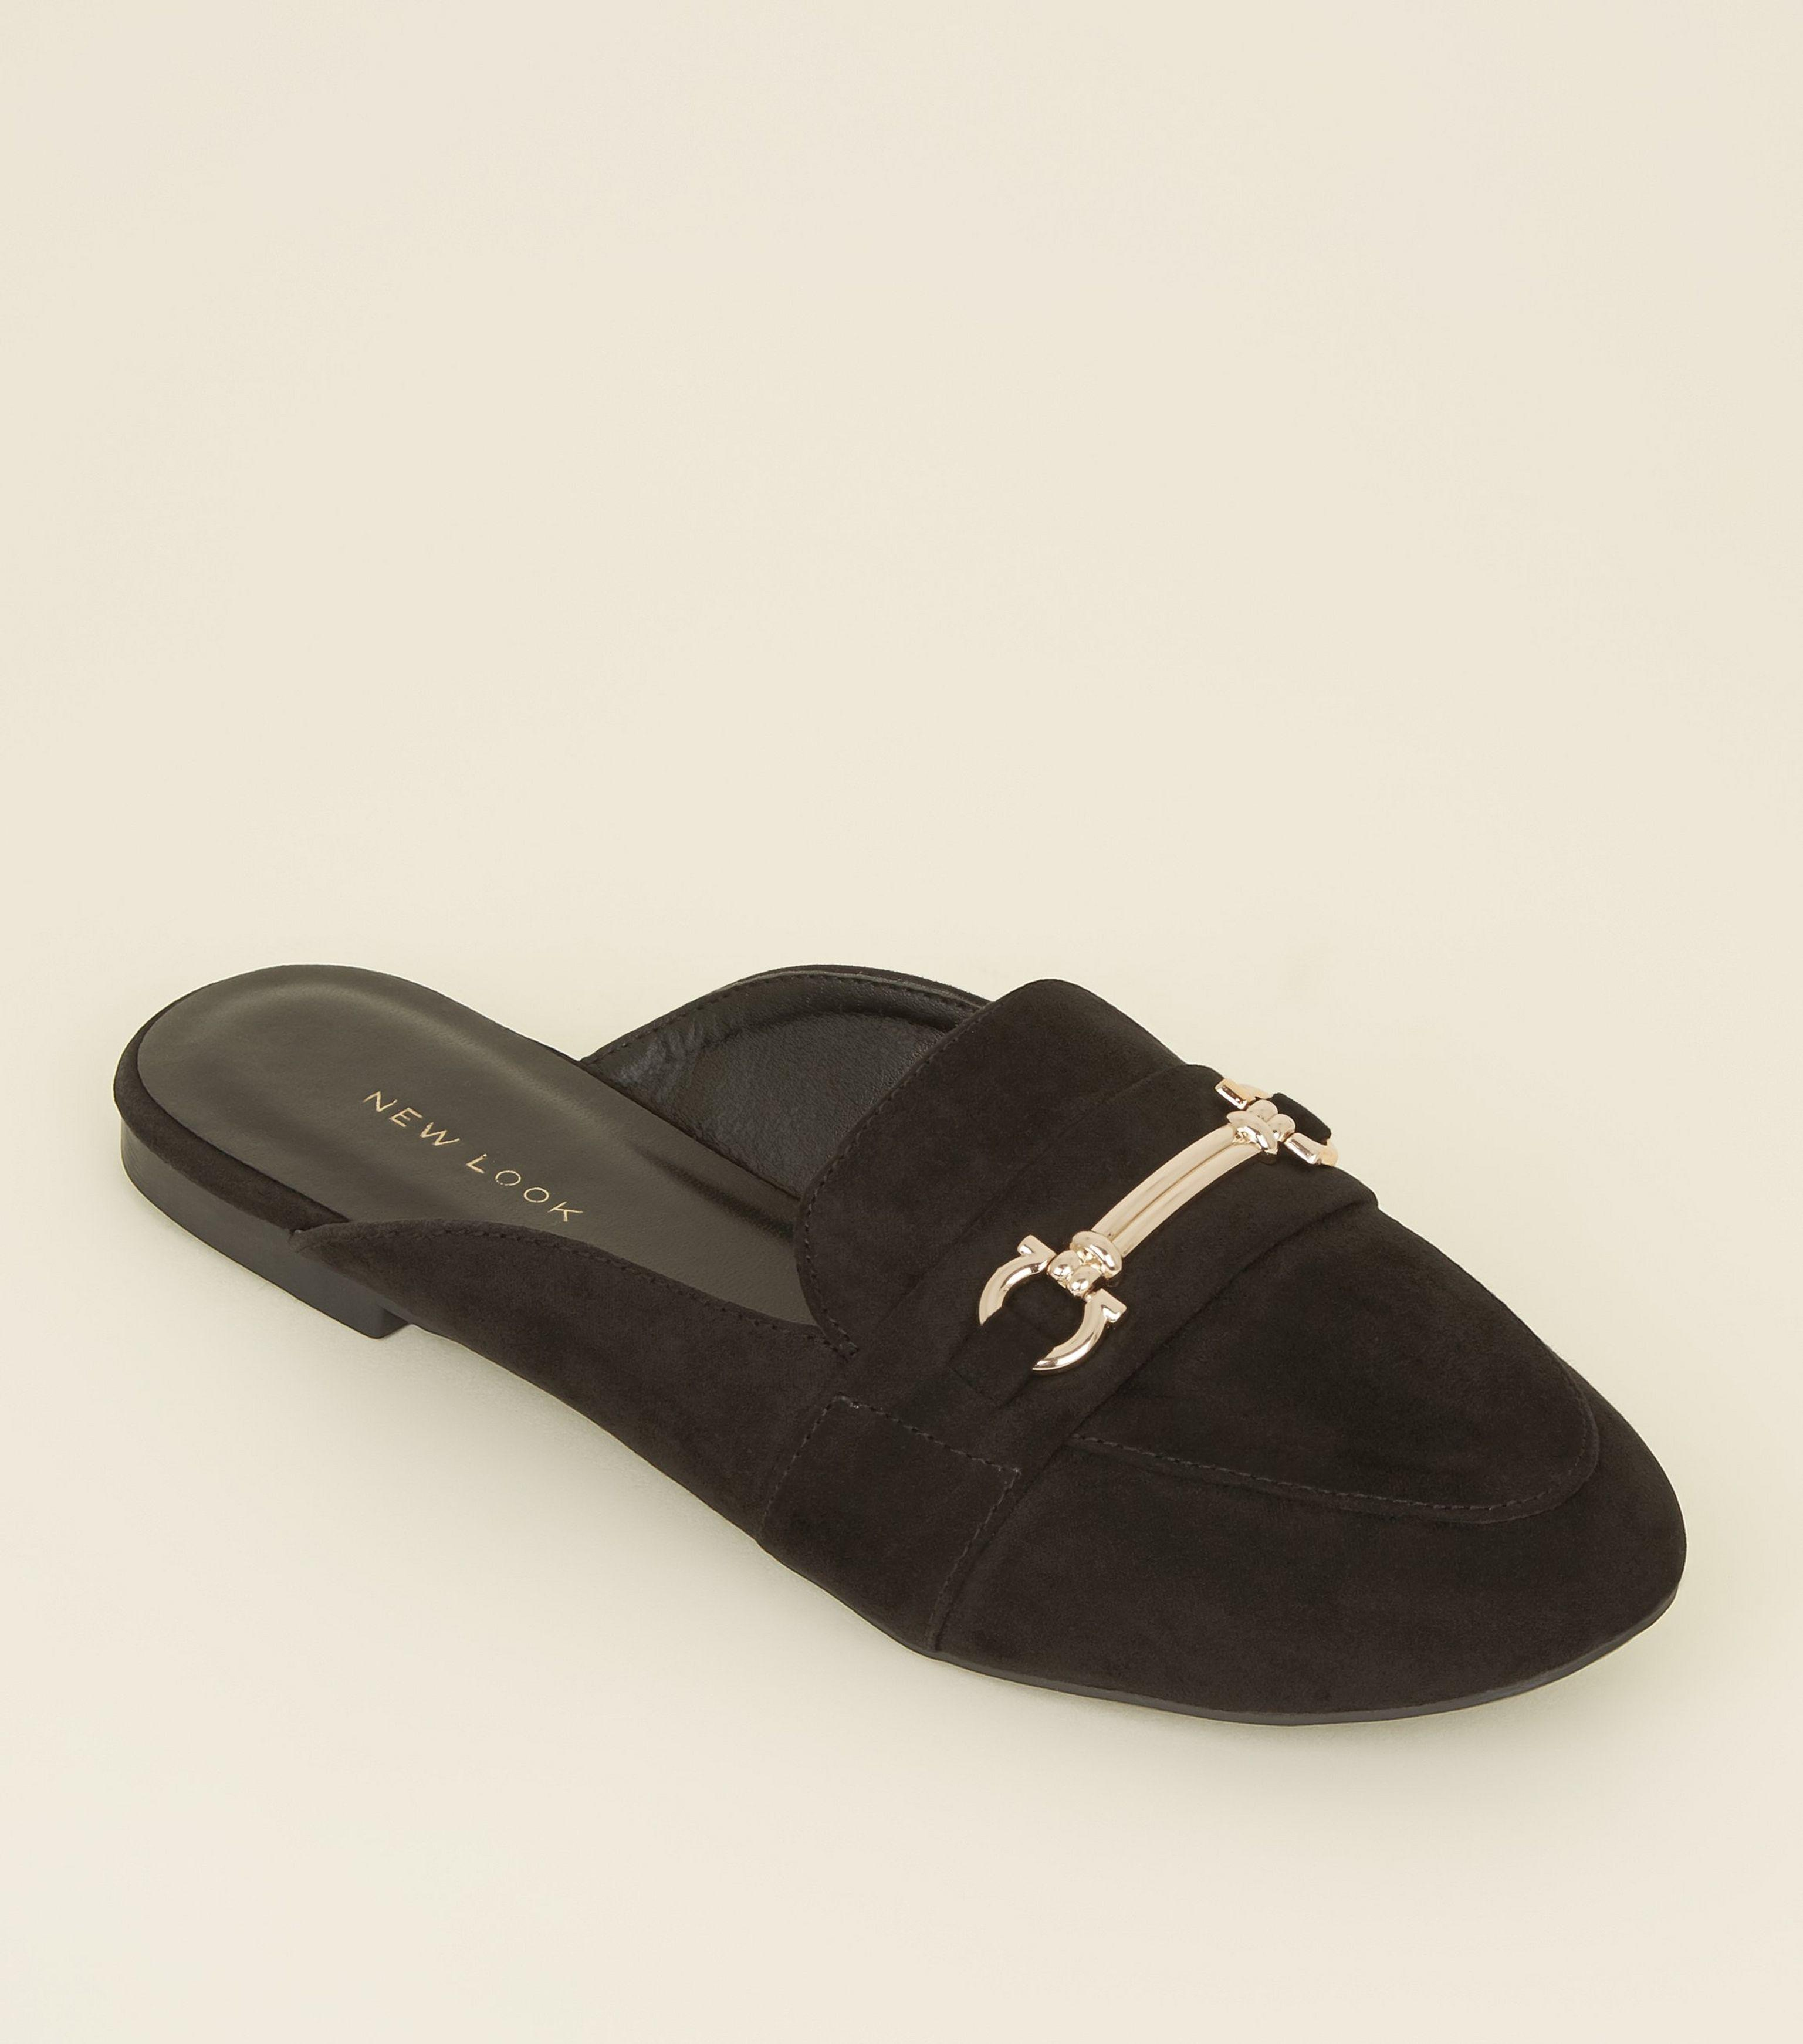 b01d0e84aafd1 New Look Black Suedette Bar Front Loafer Mules in Black - Lyst